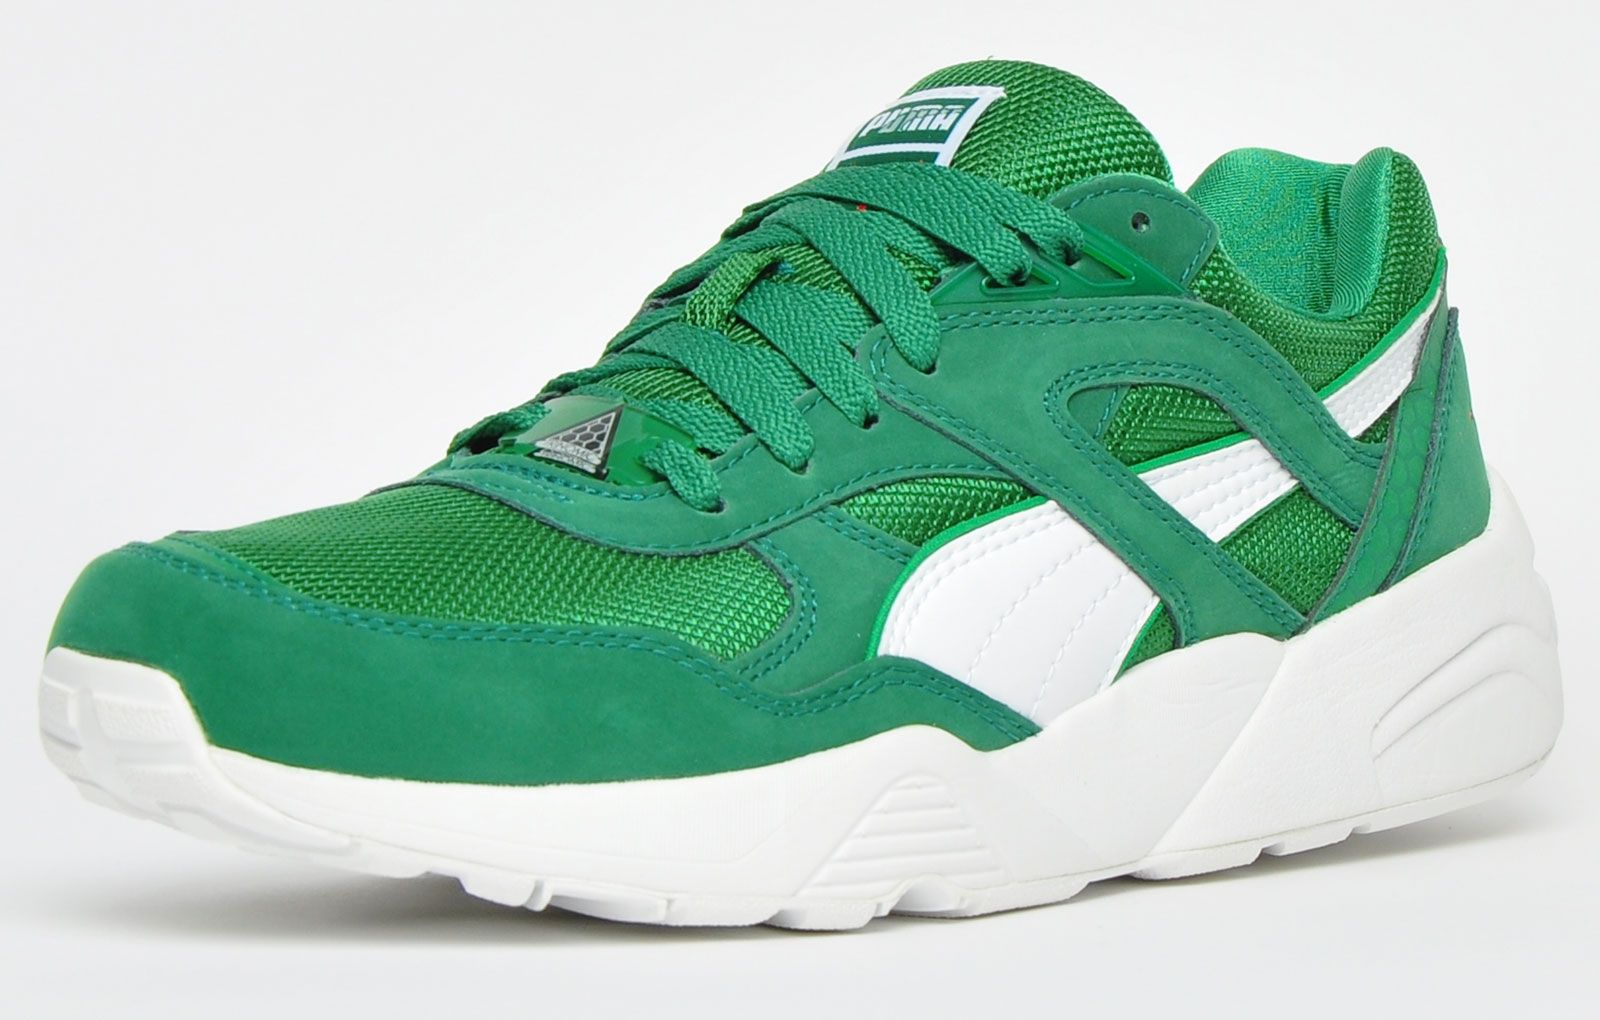 Puma Trinomic R698 Green Box Ltd Edition Mens